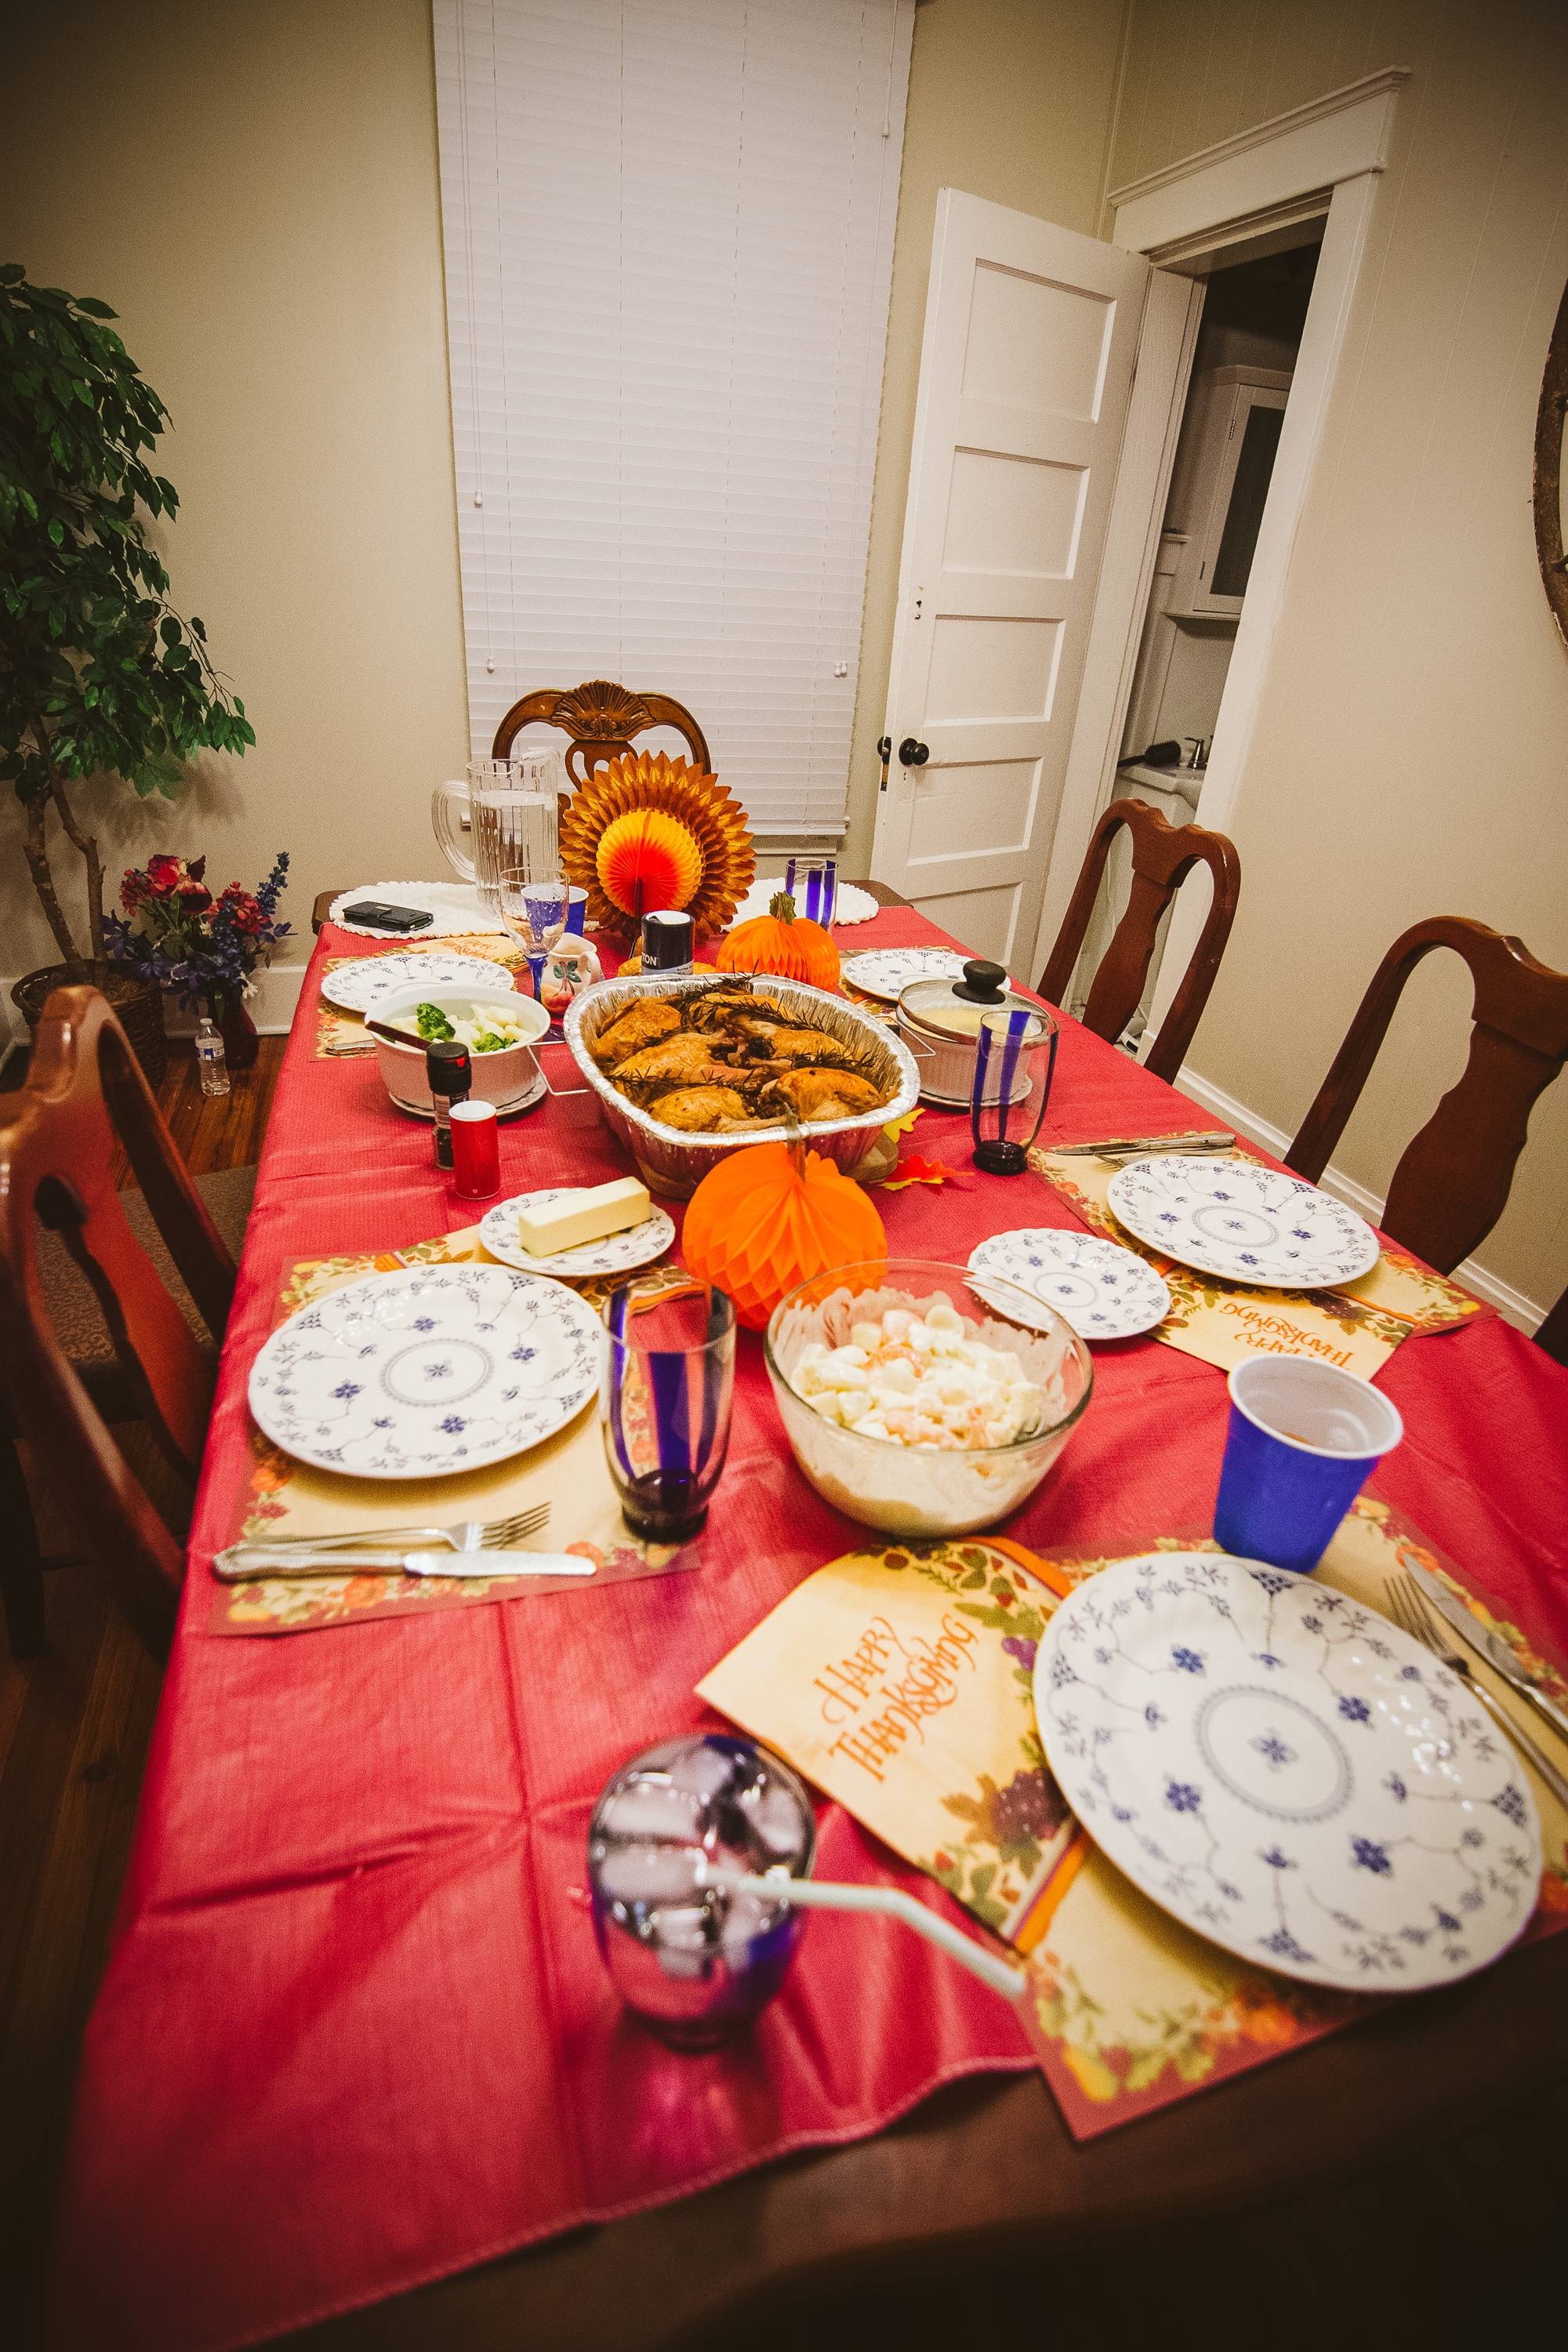 No girls holiday would be complete without a family-style meal. Lucky for us, we came prepared for Canadian Thanksgiving!